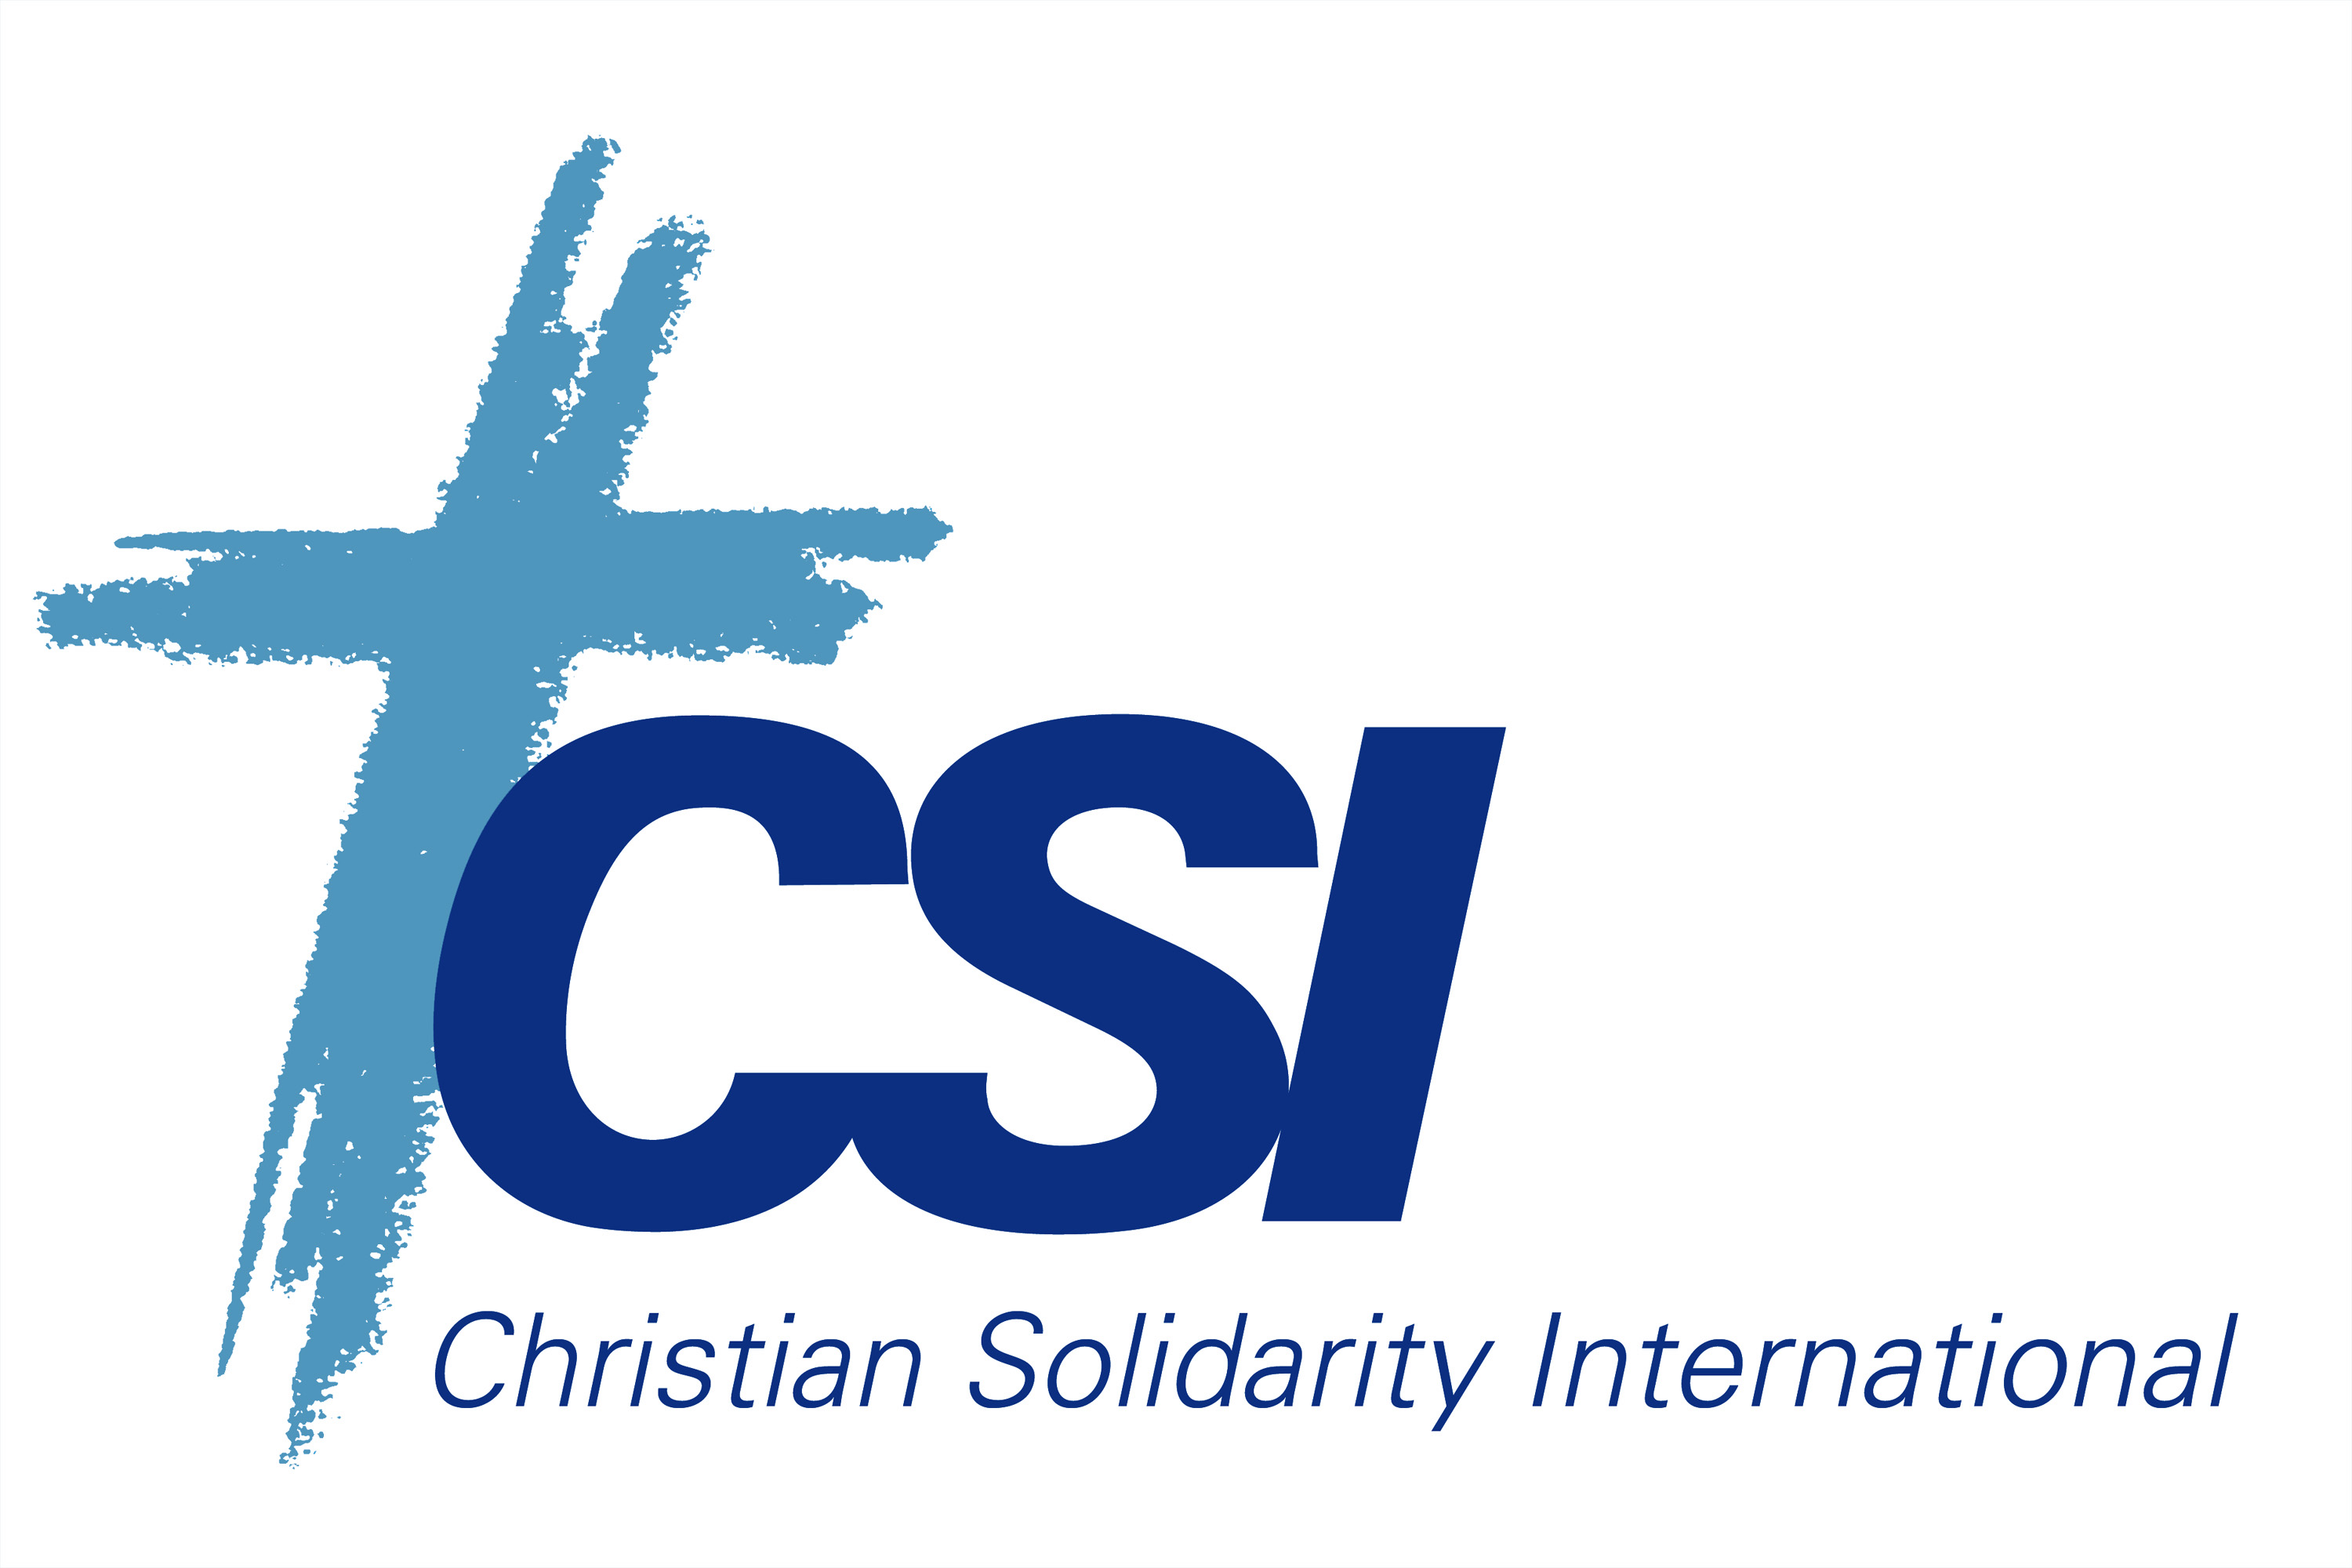 logo for Christian Solidarity International